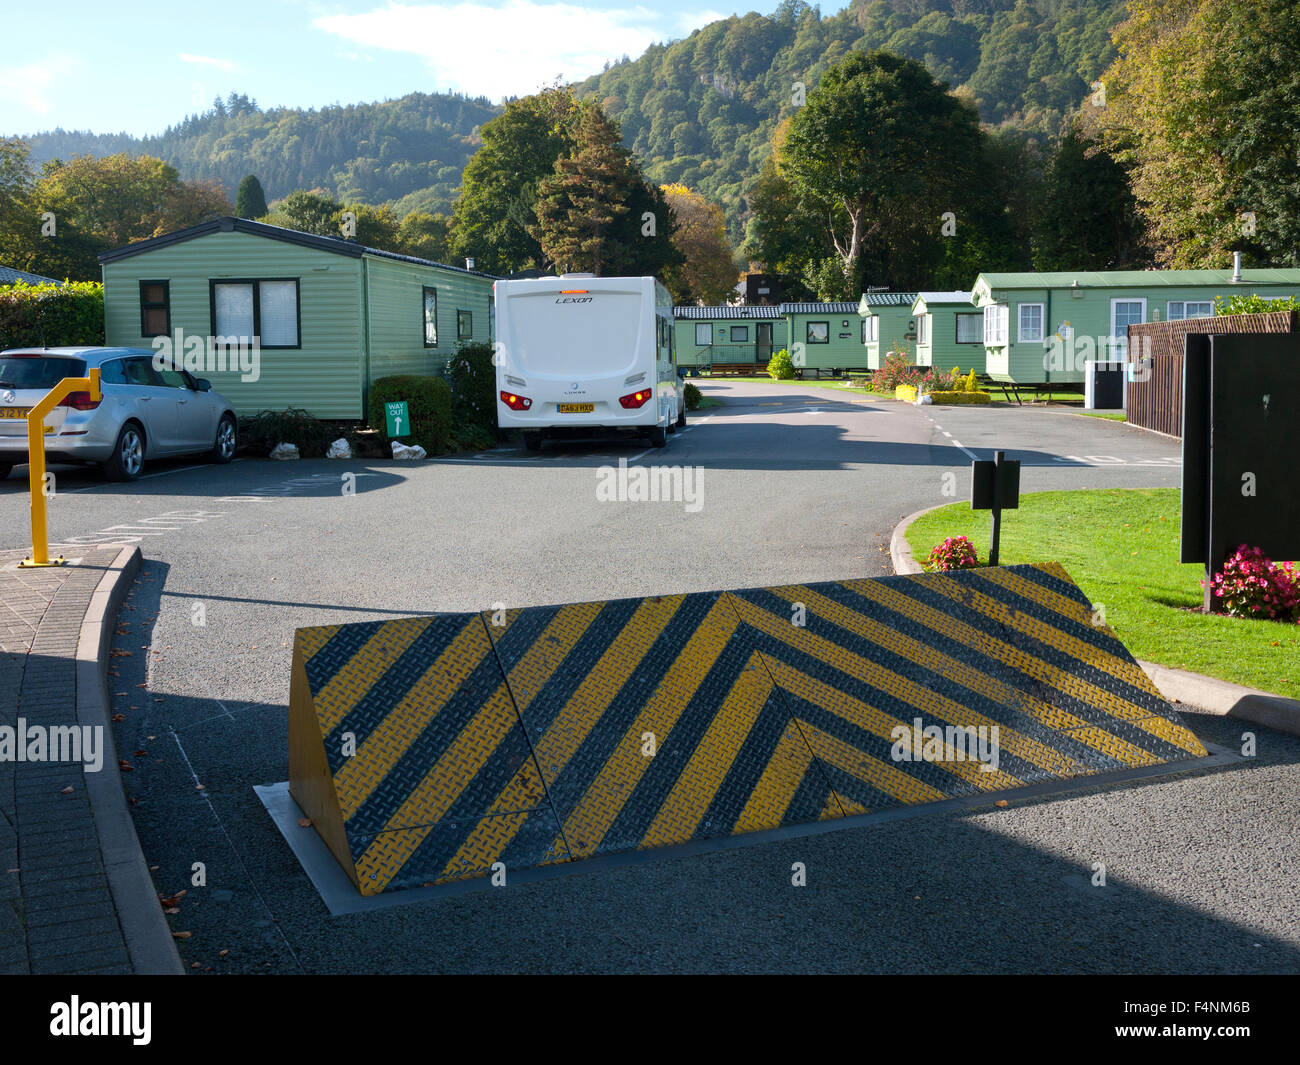 Motorhome just going through Security Barrier at campsite at Betws-y-coed, North Wales, UK. - Stock Image